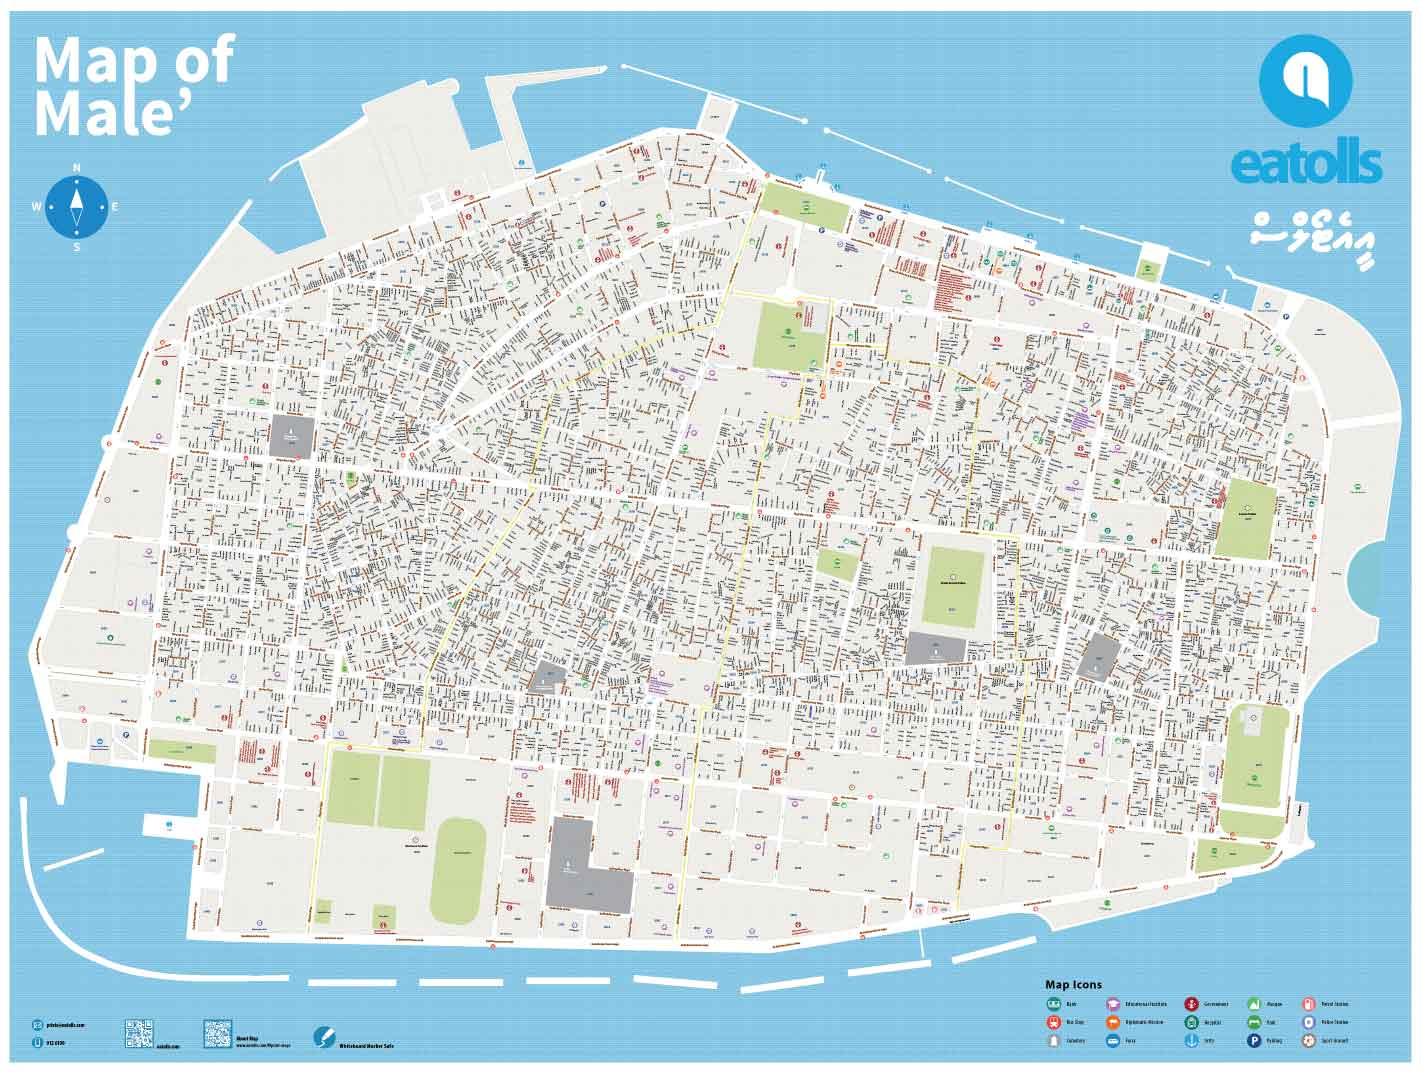 Male Maldives Map Map of Male'   Eatolls